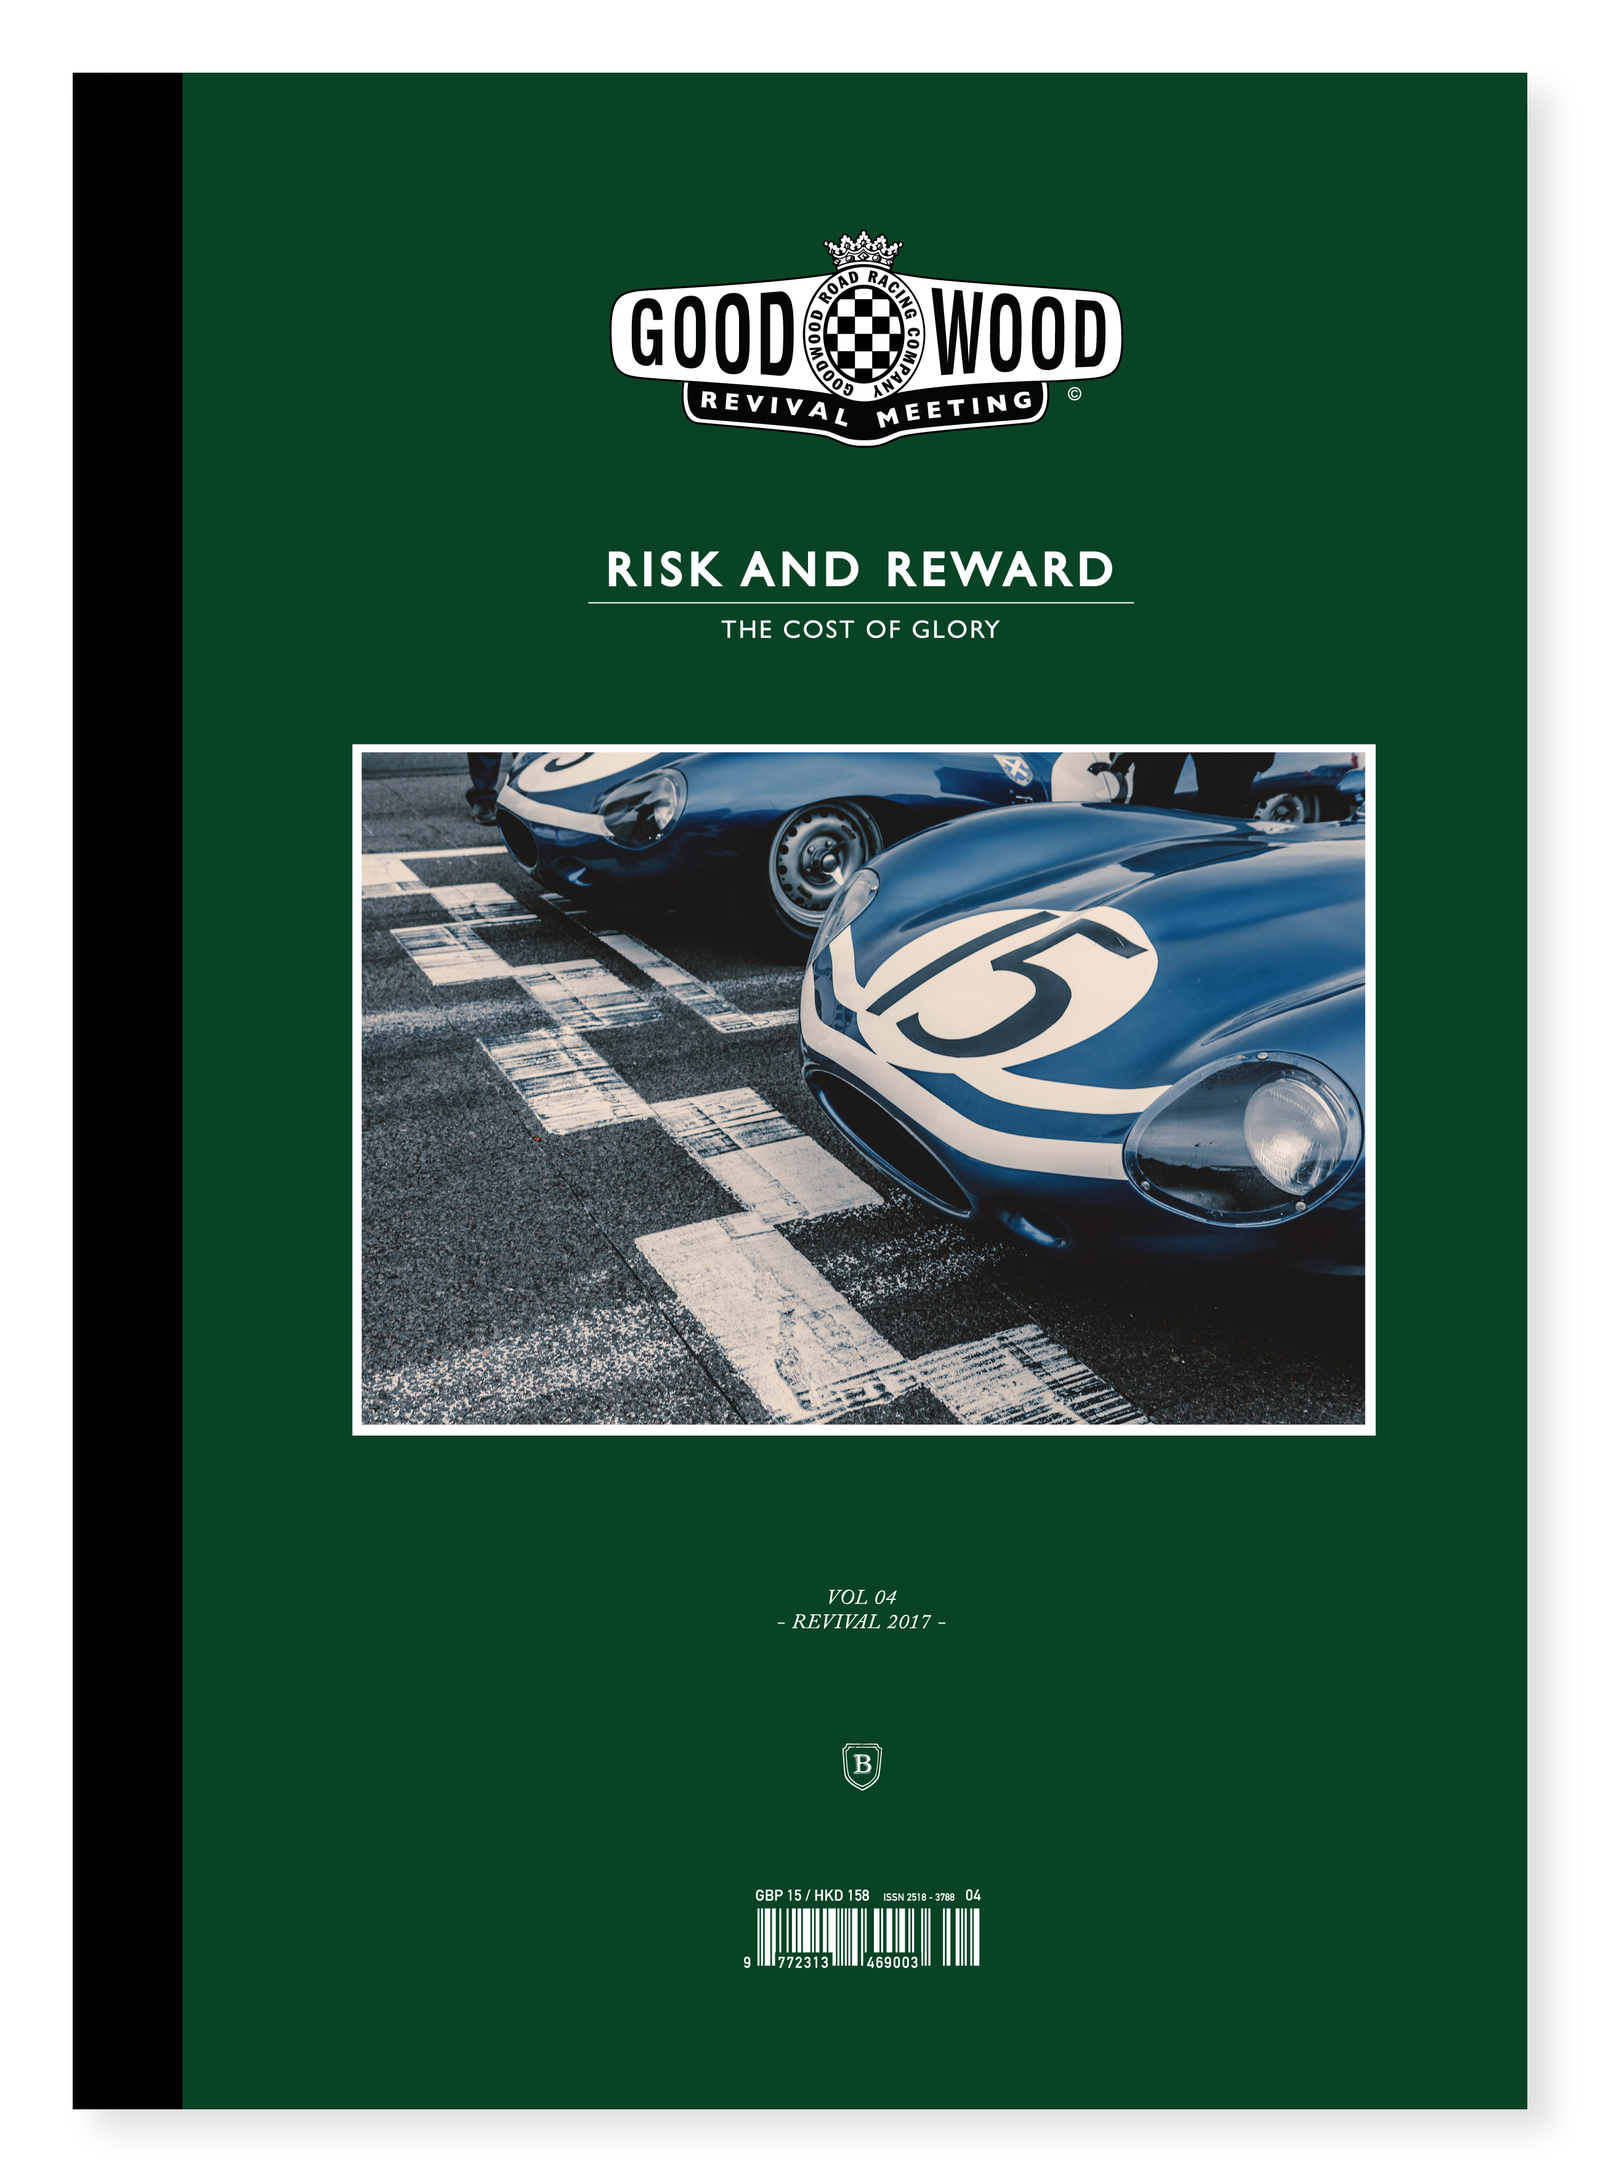 GOODWOOD VOL 04: RISK AND REWARD